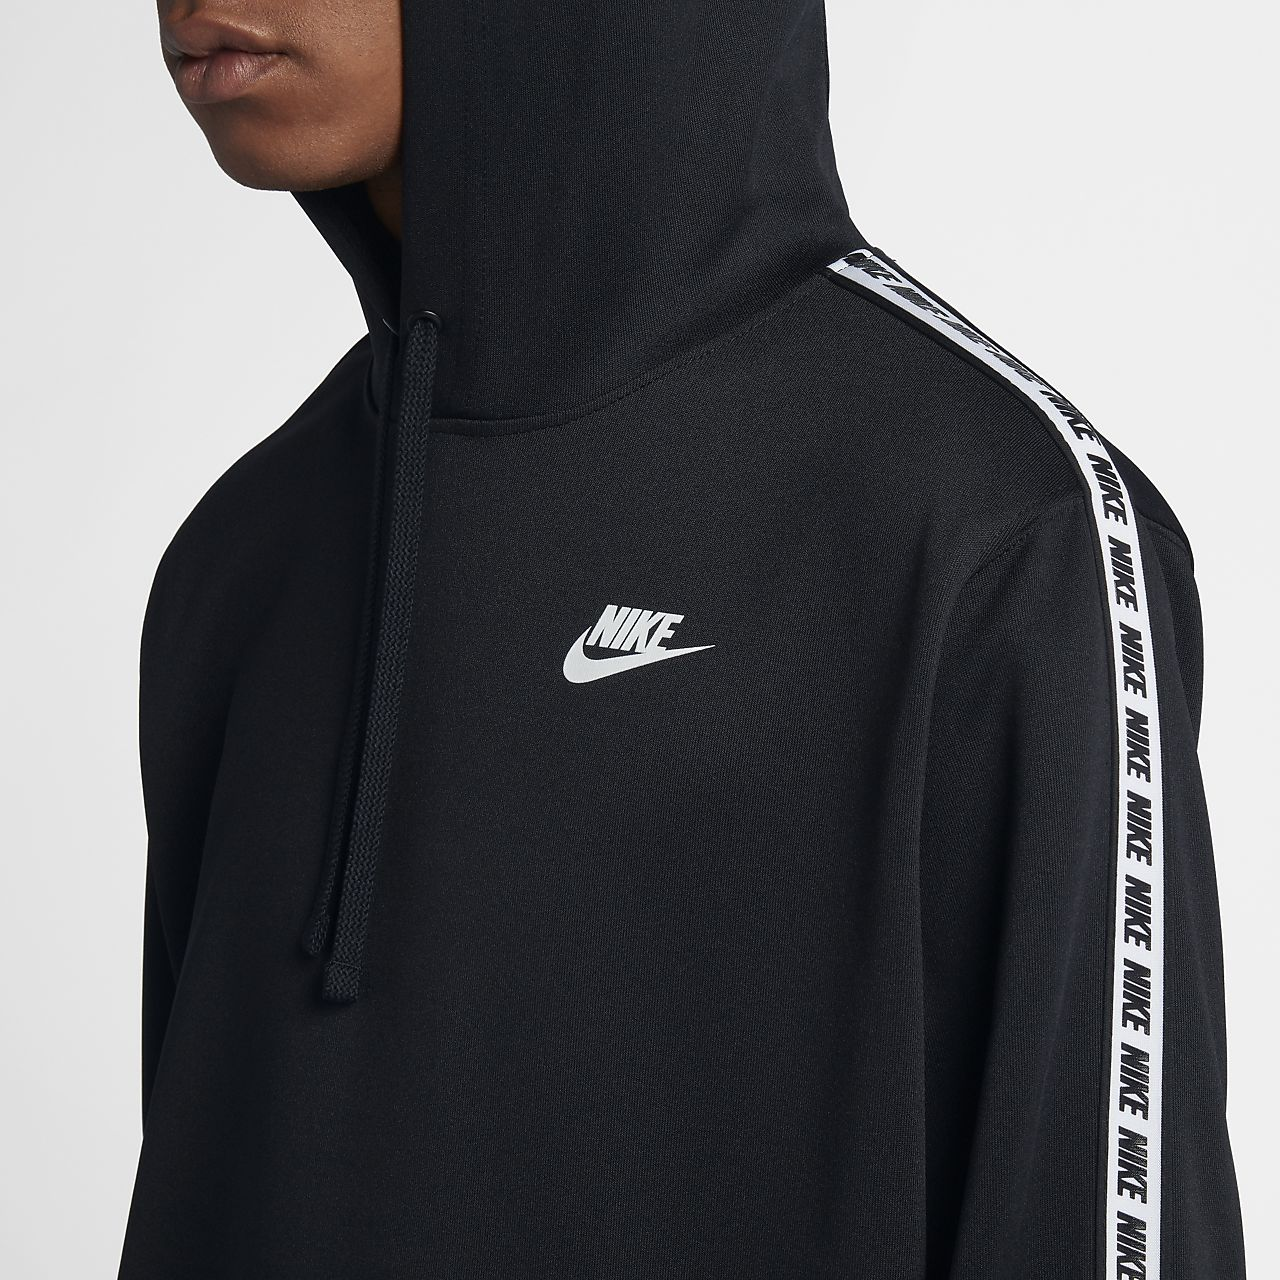 best website 94a4c c7945 Low Resolution Nike Sportswear Mens Pullover Hoodie Nike Sportswear Mens  Pullover Hoodie